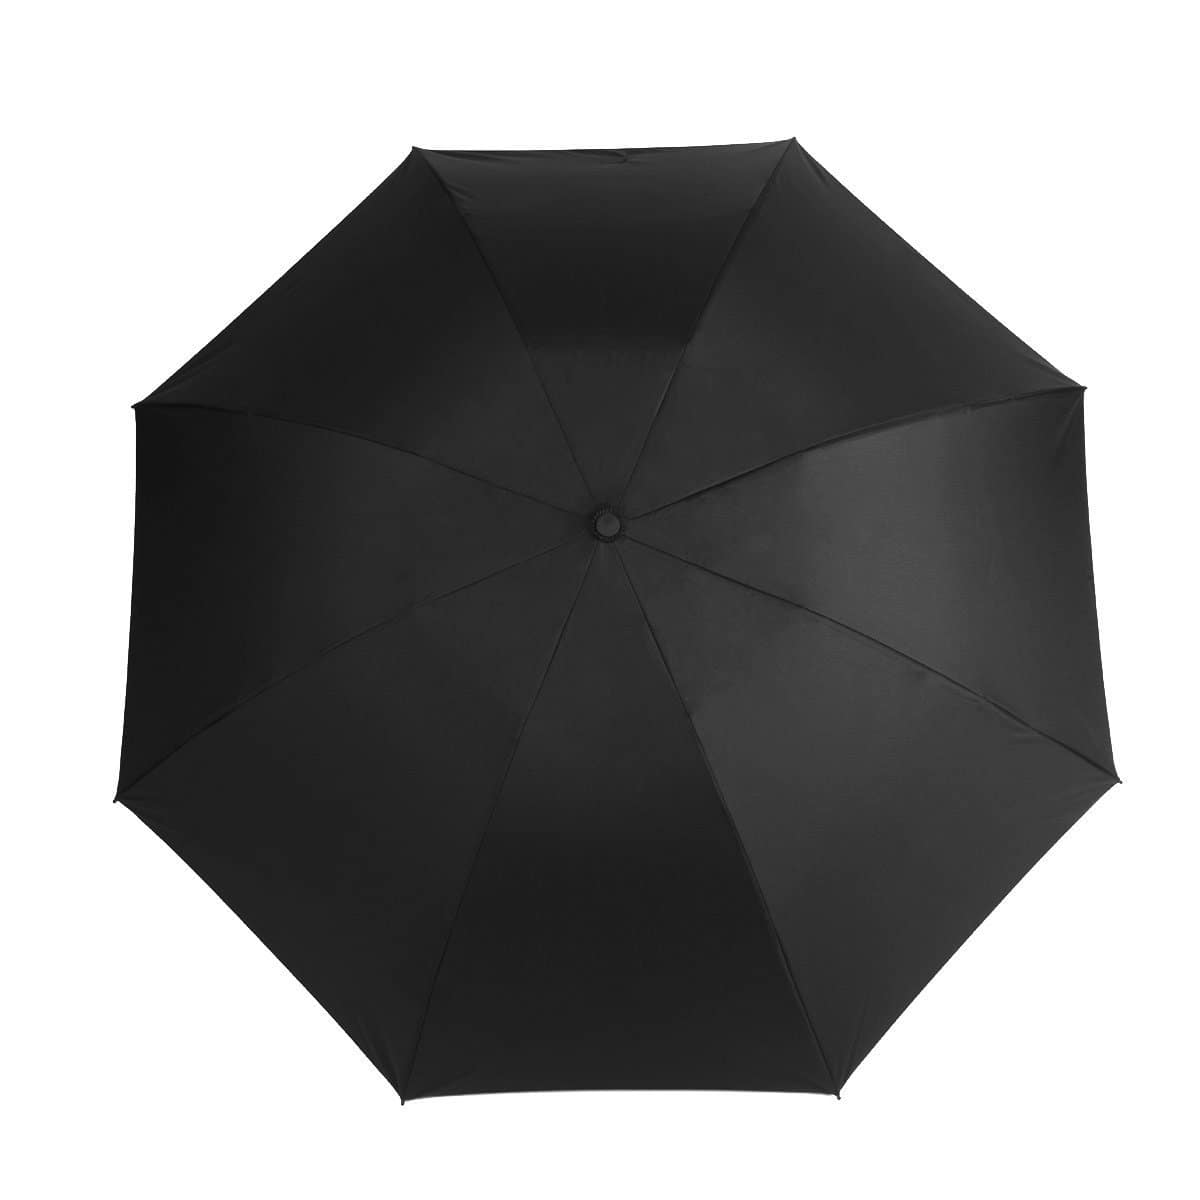 "Travel Umbrella: 46.5"" Auto Open/Close with Reverse Folding + Windproof Teflon Technology  [Black] $11.97"